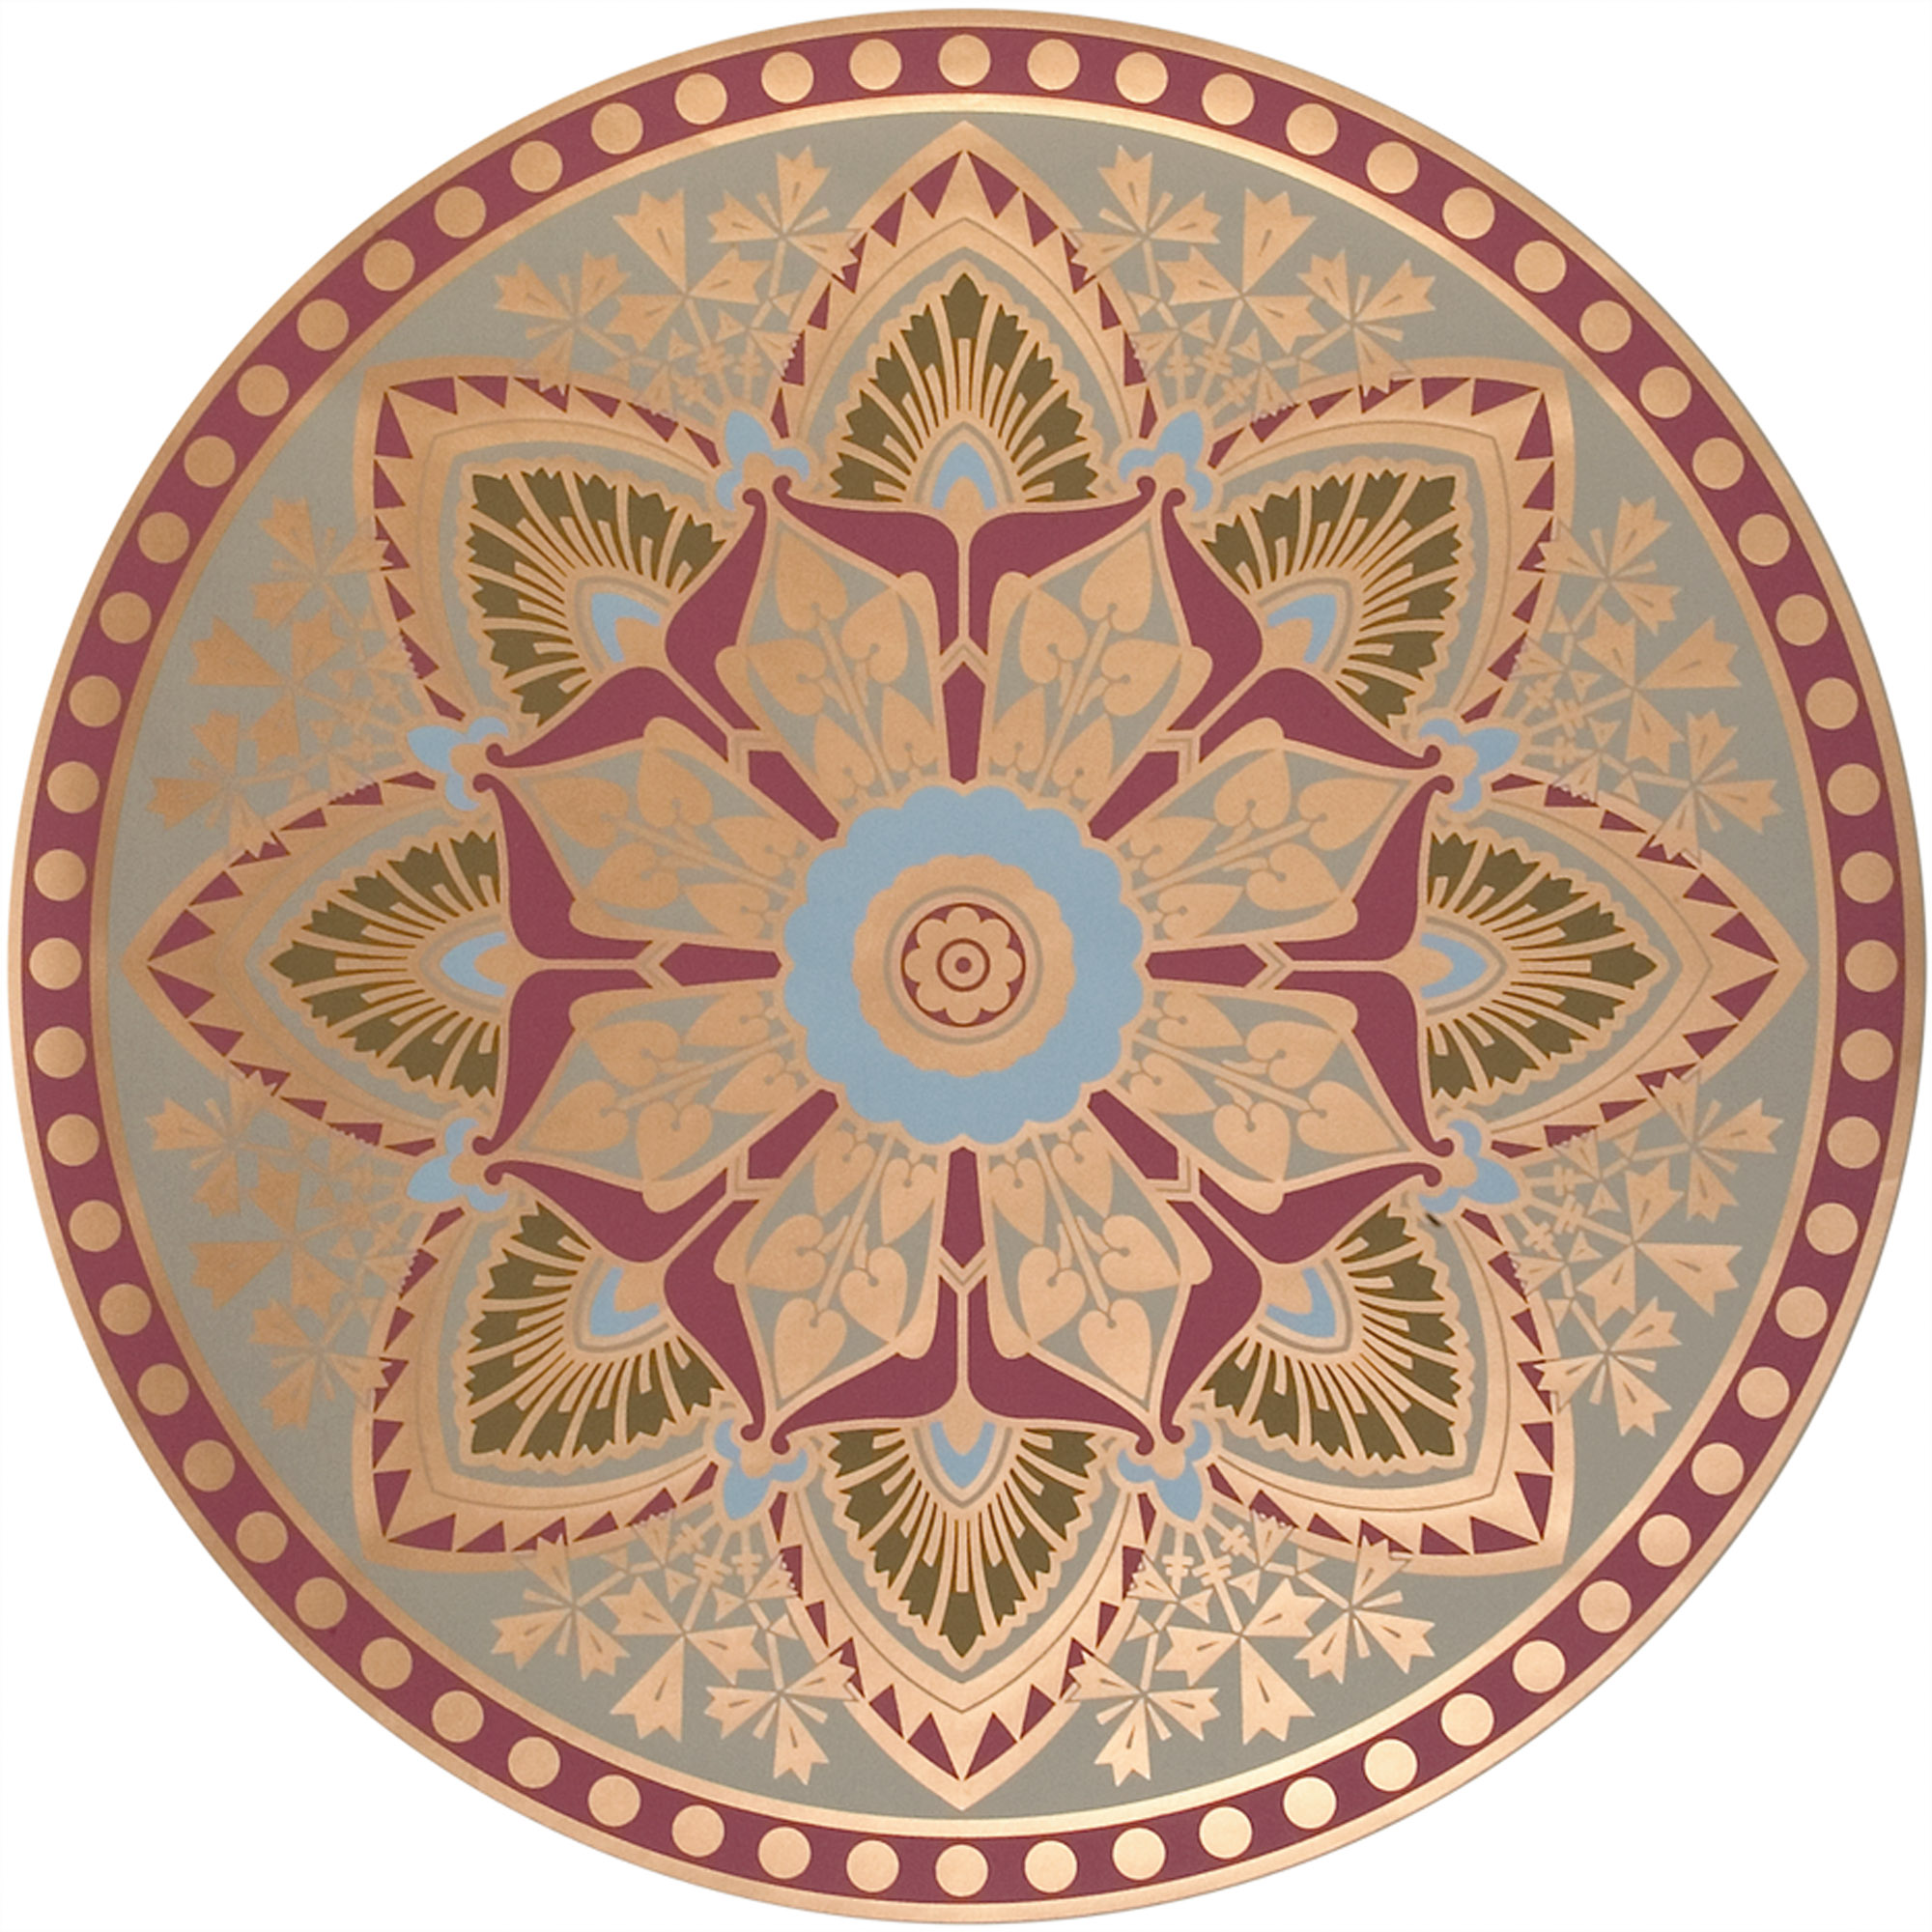 A ceiling rosette by English designer Christopher Dresser, reproduced by Mason & Wolf Wallpapers, has Aesthetic colors with metallic accents.